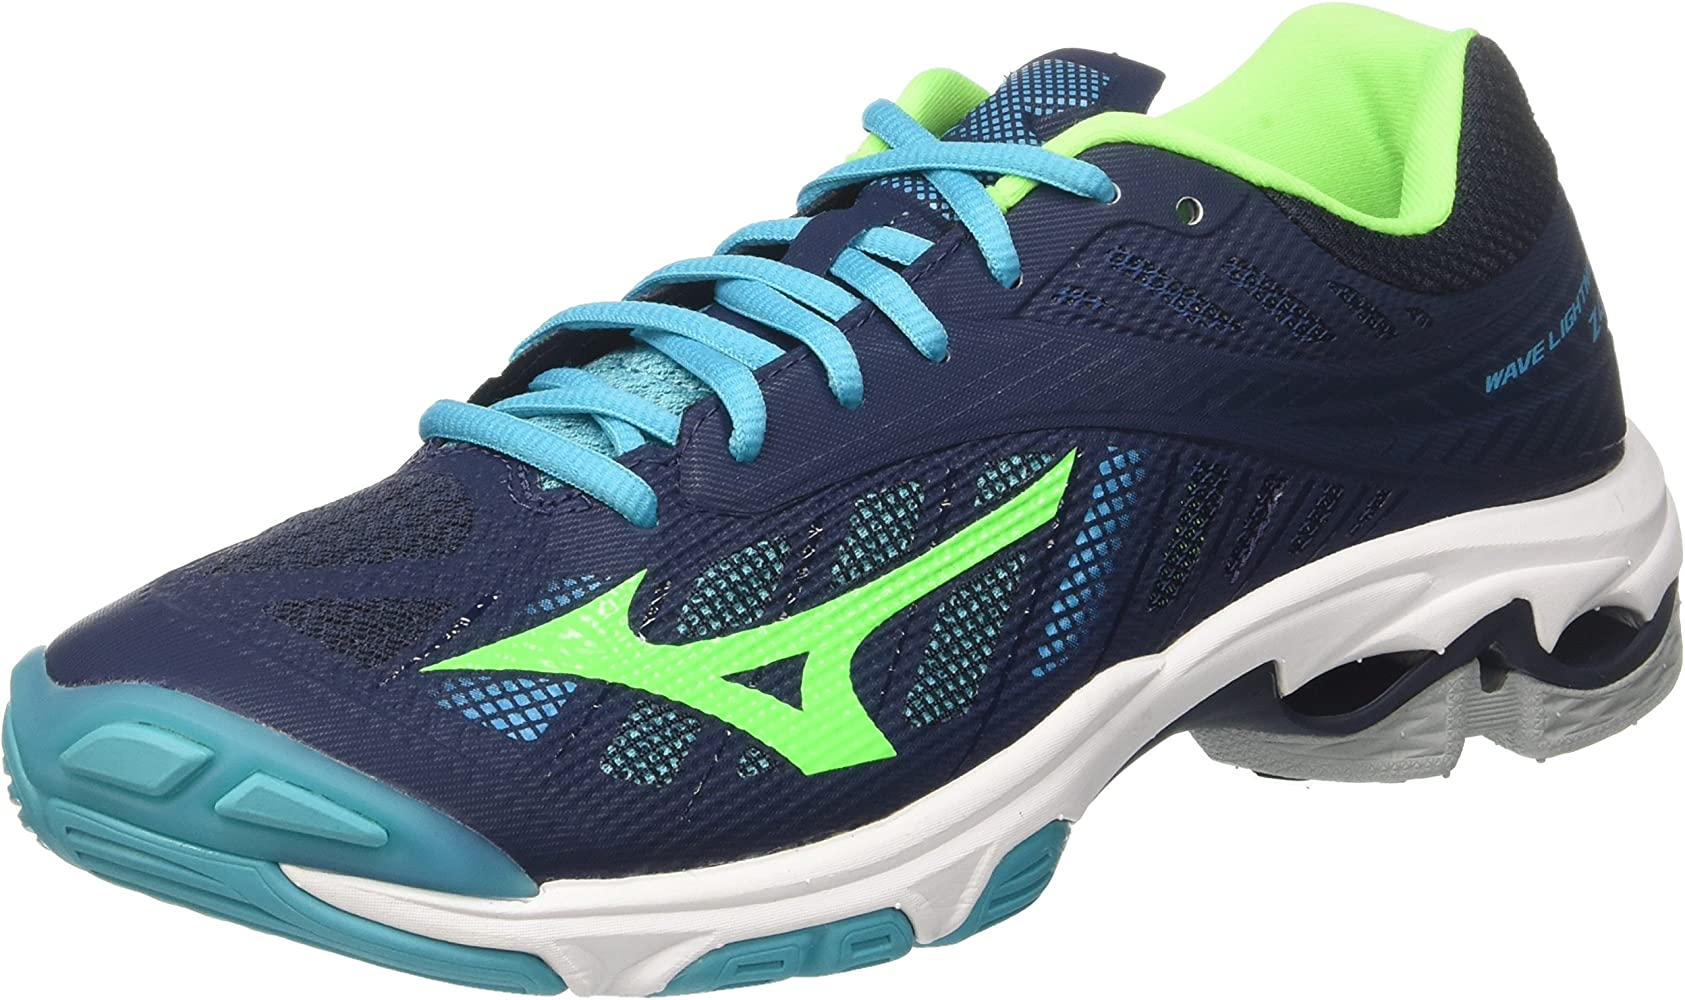 mizuno mens running shoes size 9 yeezy usados hombres